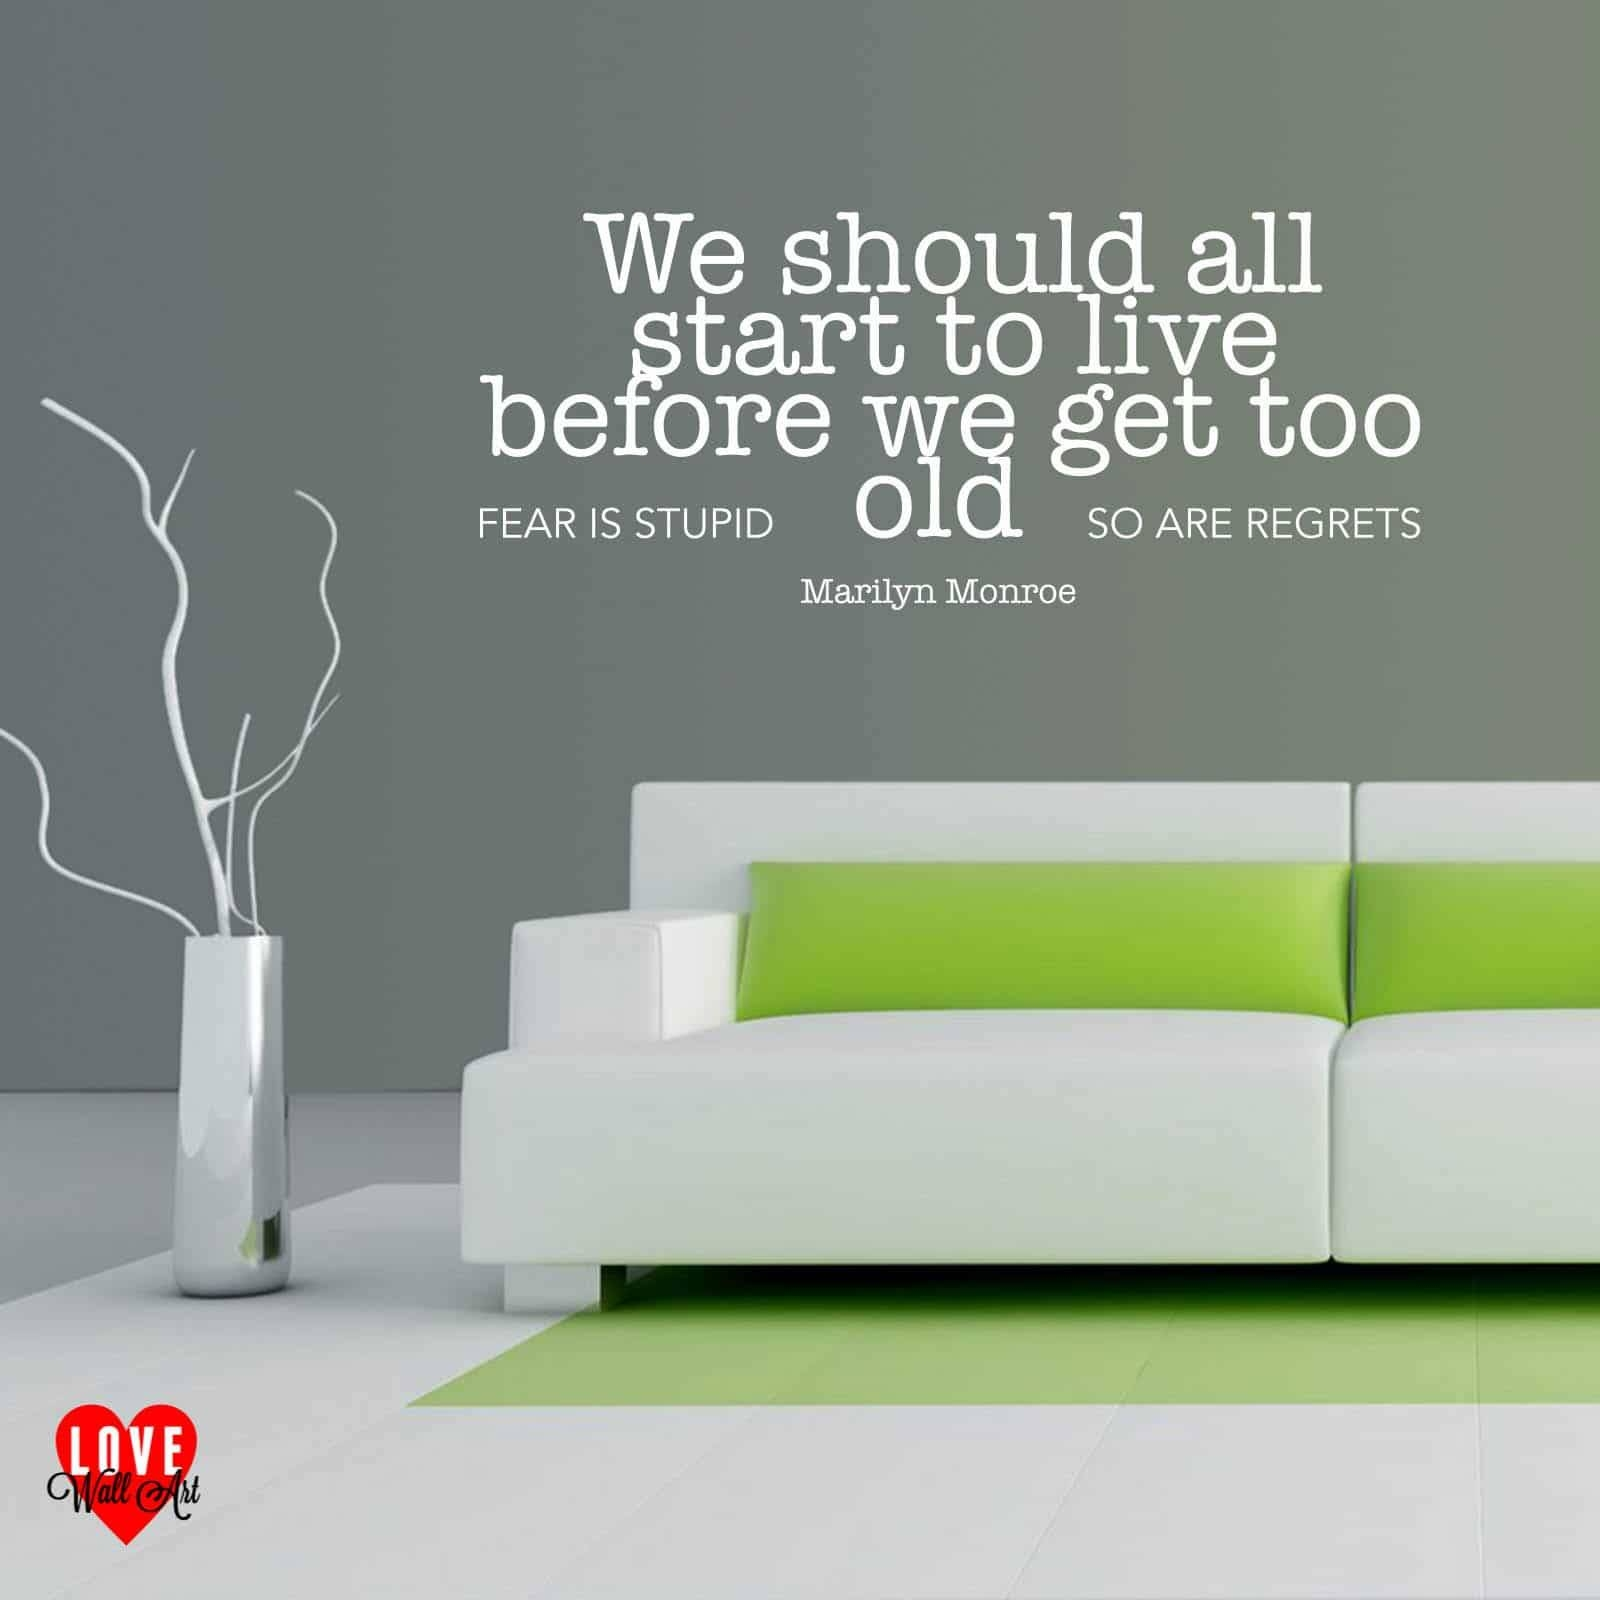 We Should All Start To Live Marilyn Monroe Wall Art Quote Wall Sticker Within Recent Marilyn Monroe Wall Art Quotes (View 24 of 25)